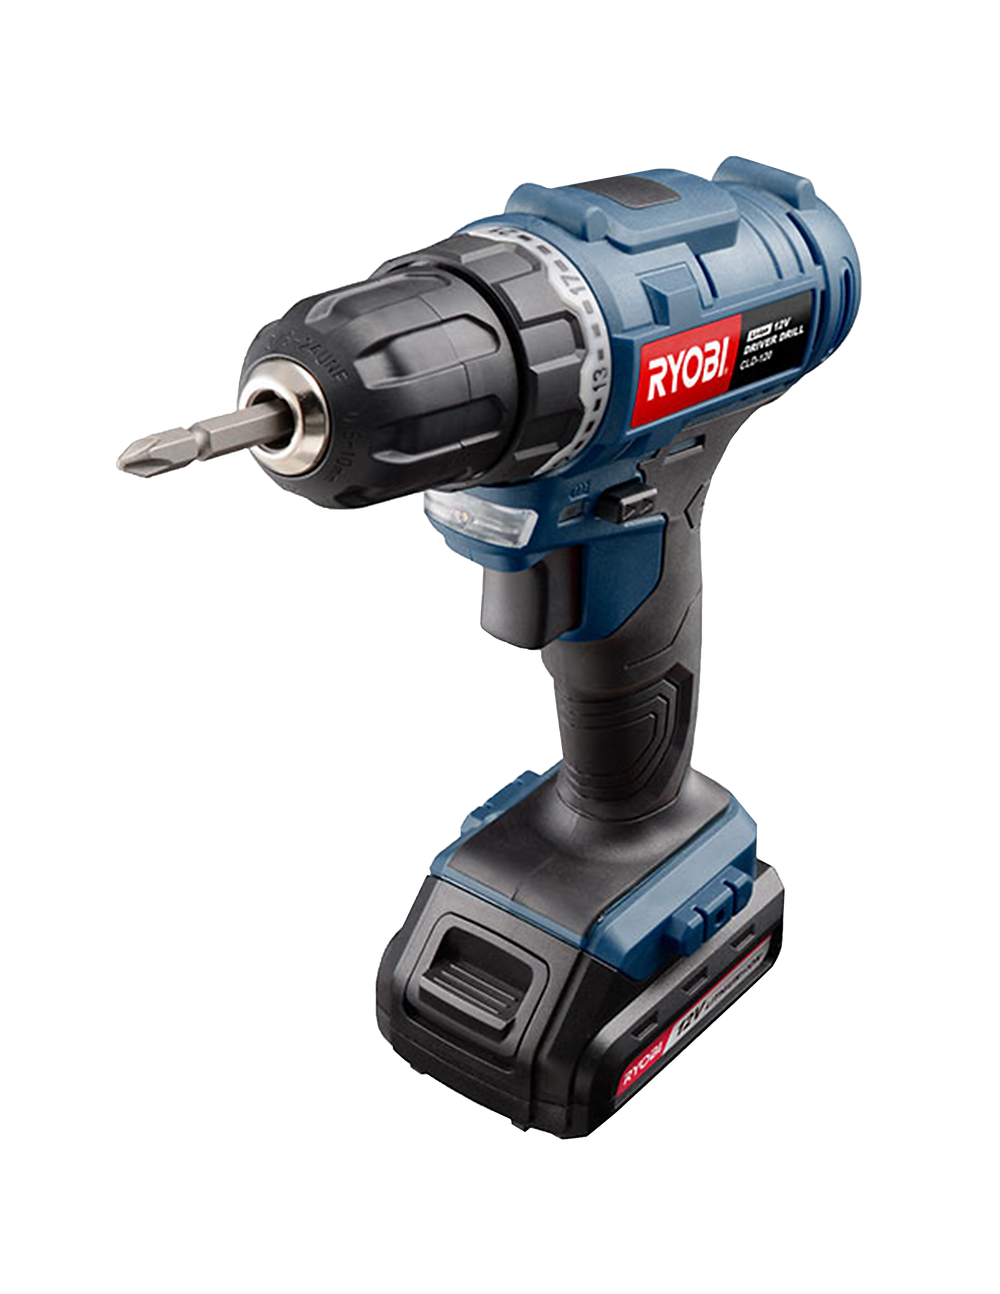 Black and Blue Driver Drill with Ryobi Power Tools logo